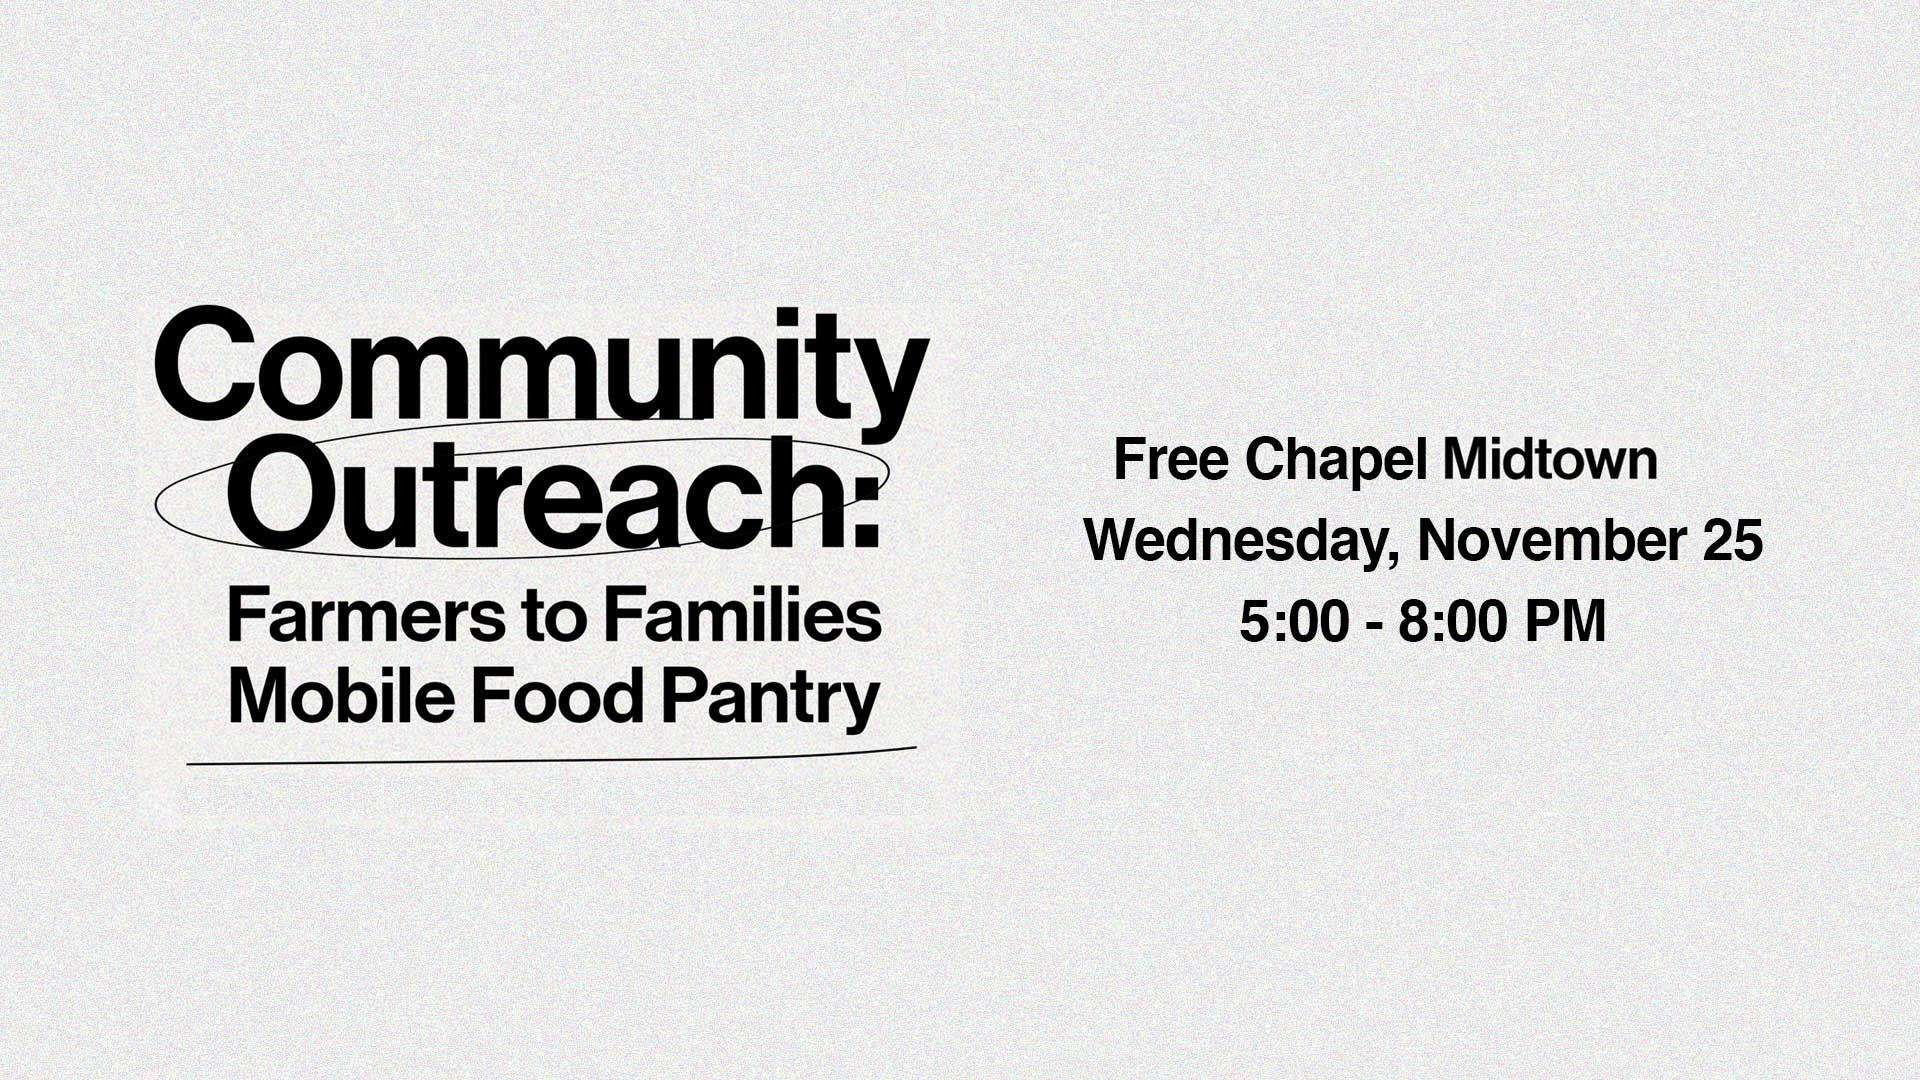 Community Outreach at the Midtown campus